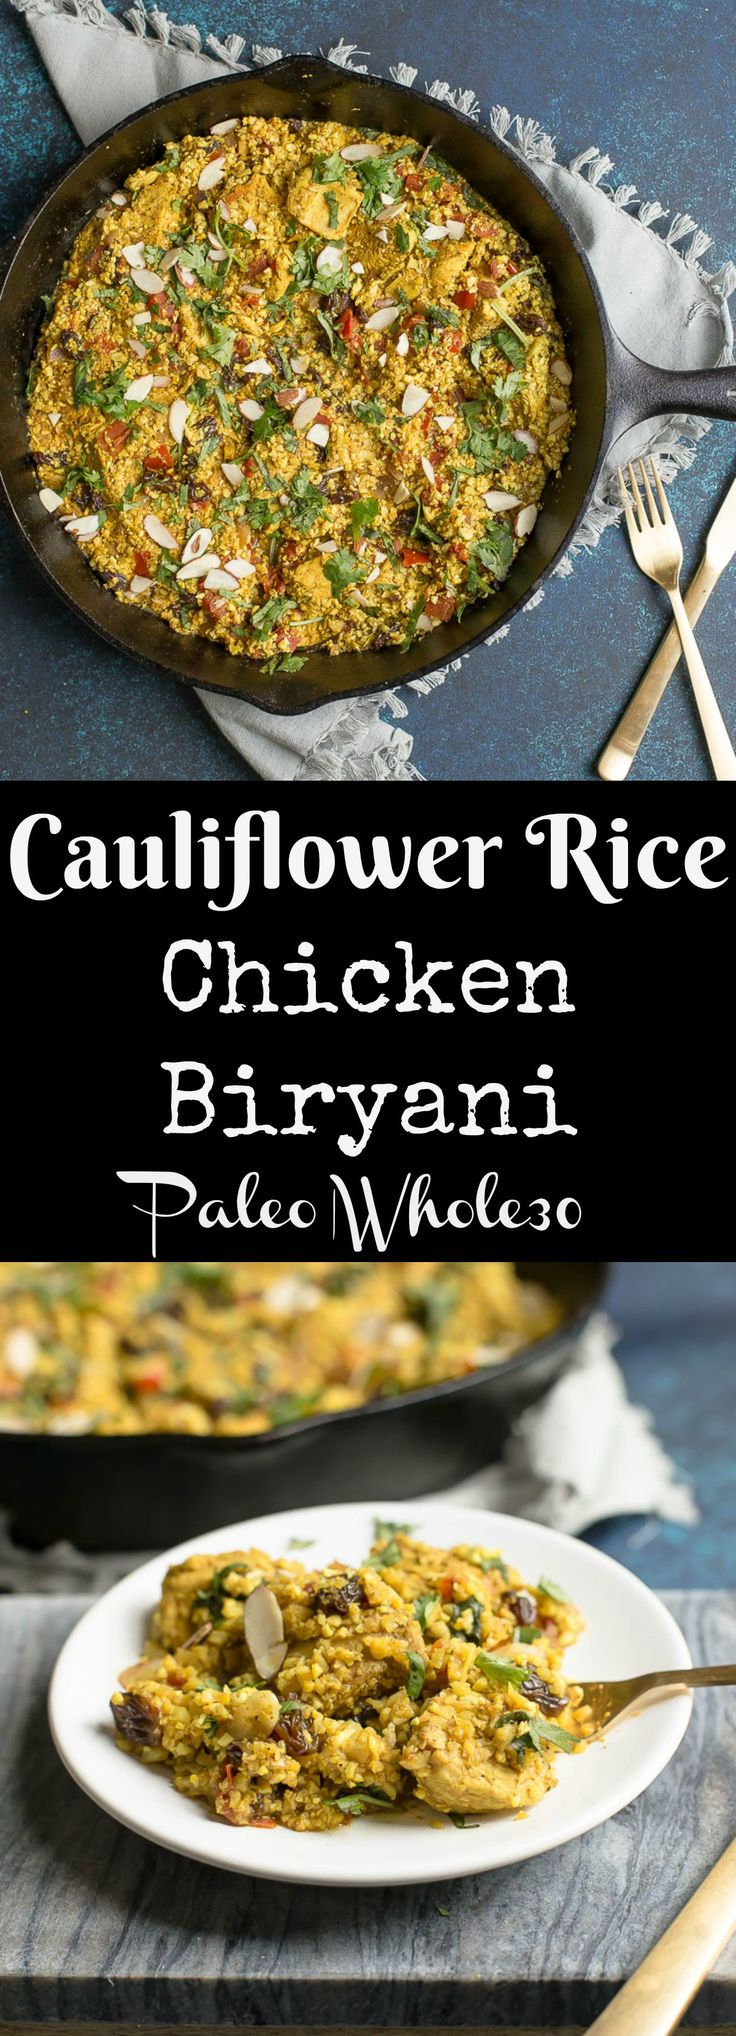 This classic Indian dish gets a healthy Paleo/Whole30 makeover with cauliflower rice. Easy 20 minute dinner the whole family will love!